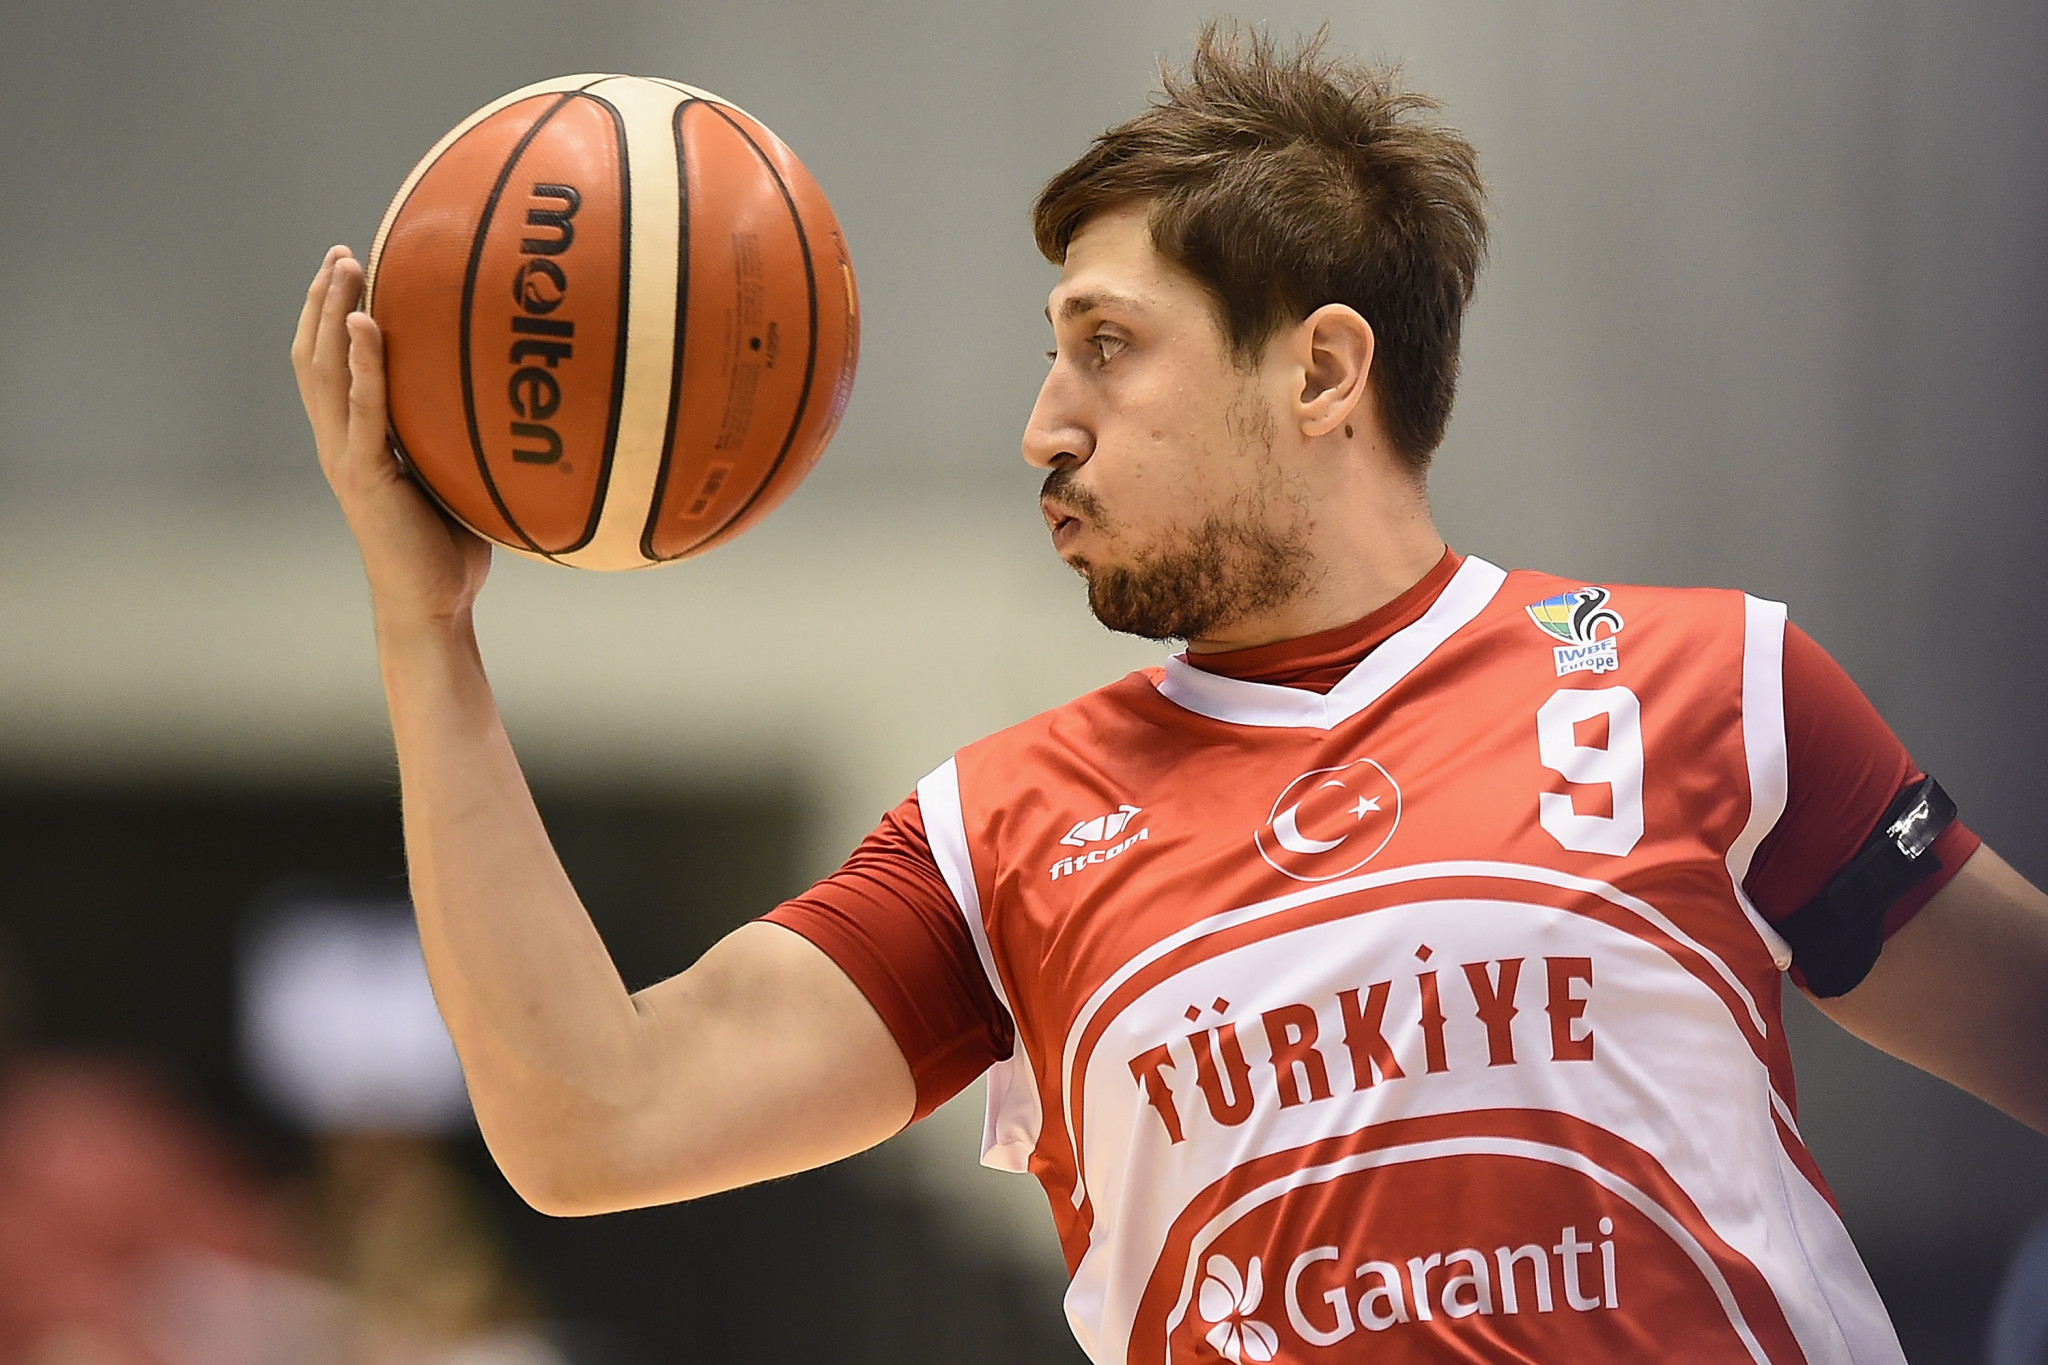 Turkey are unbeaten at the IWBF Men's European Championship Division A ©Getty Images